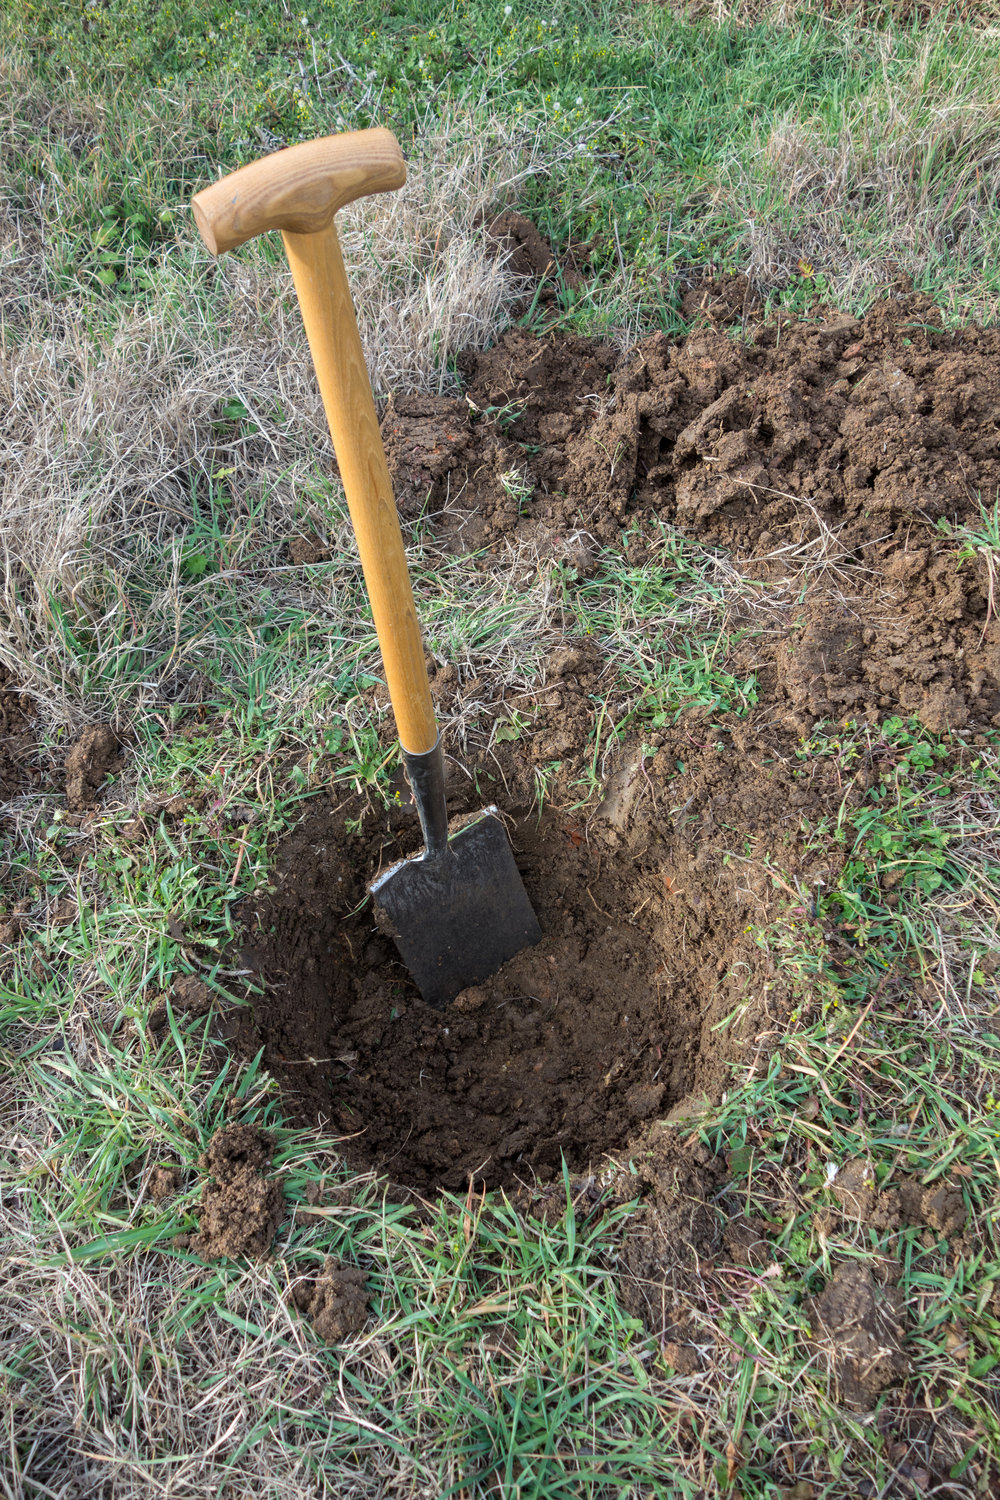 PLANTING TIPS: - The Planting Hole: Getting the hole right in terms of depth and size is a critical step for the survival of your tree.Step 1. Ensure the depth of the hole is equivalent to the depth of the root ball and NO deeper. Planting in a hole that is deeper than the root ball depth can lead to slow growth development, diseases and even death of the plant.Step 2. Ensure that the diameter of the hole is no less than three times the diameter of the root ball, especially in compact soils.A larger hole (in terms of diameter) with sloping sides will create a greater volume of loose cultivated soil that creates aeration which allows for good water penetration for rapid and healthy root growth.